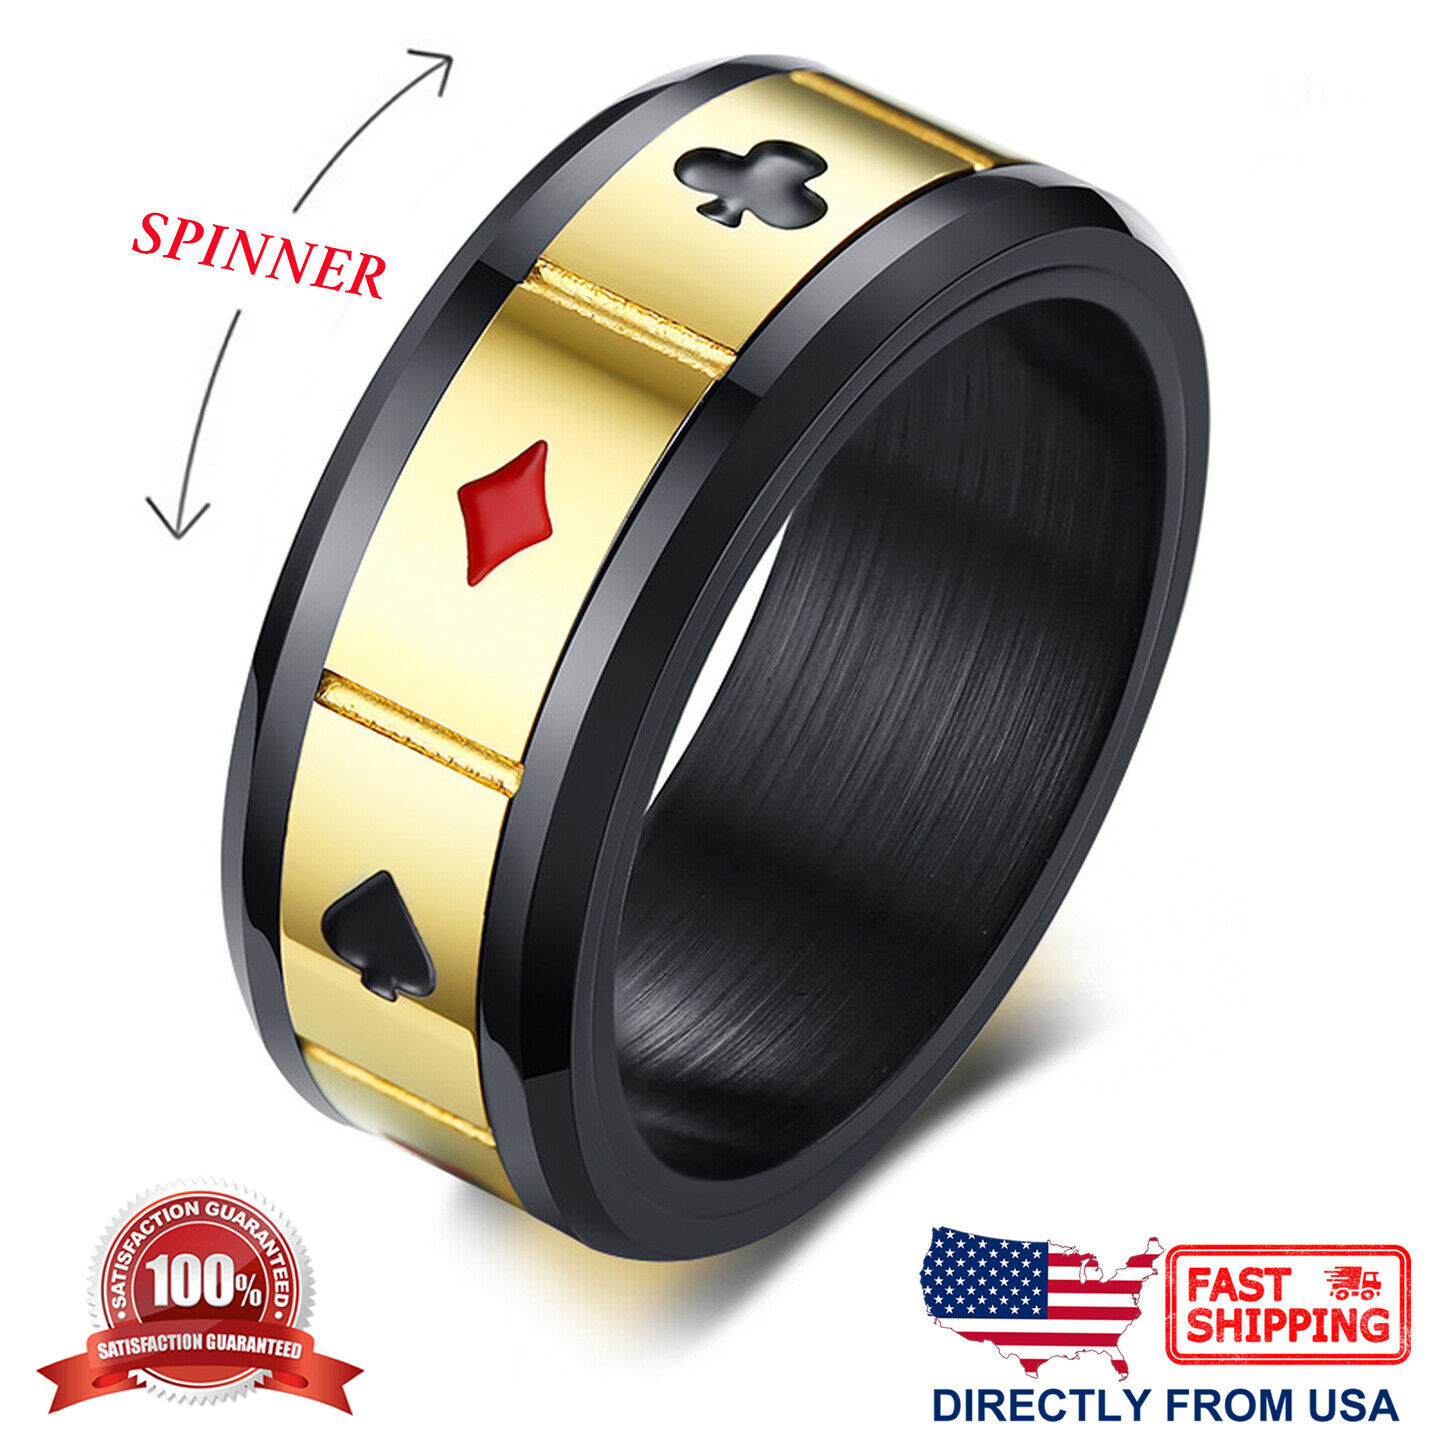 Men's Stainless Steel Poker Card Game Anxiety Calming Spinner Ring Jewelry & Watches